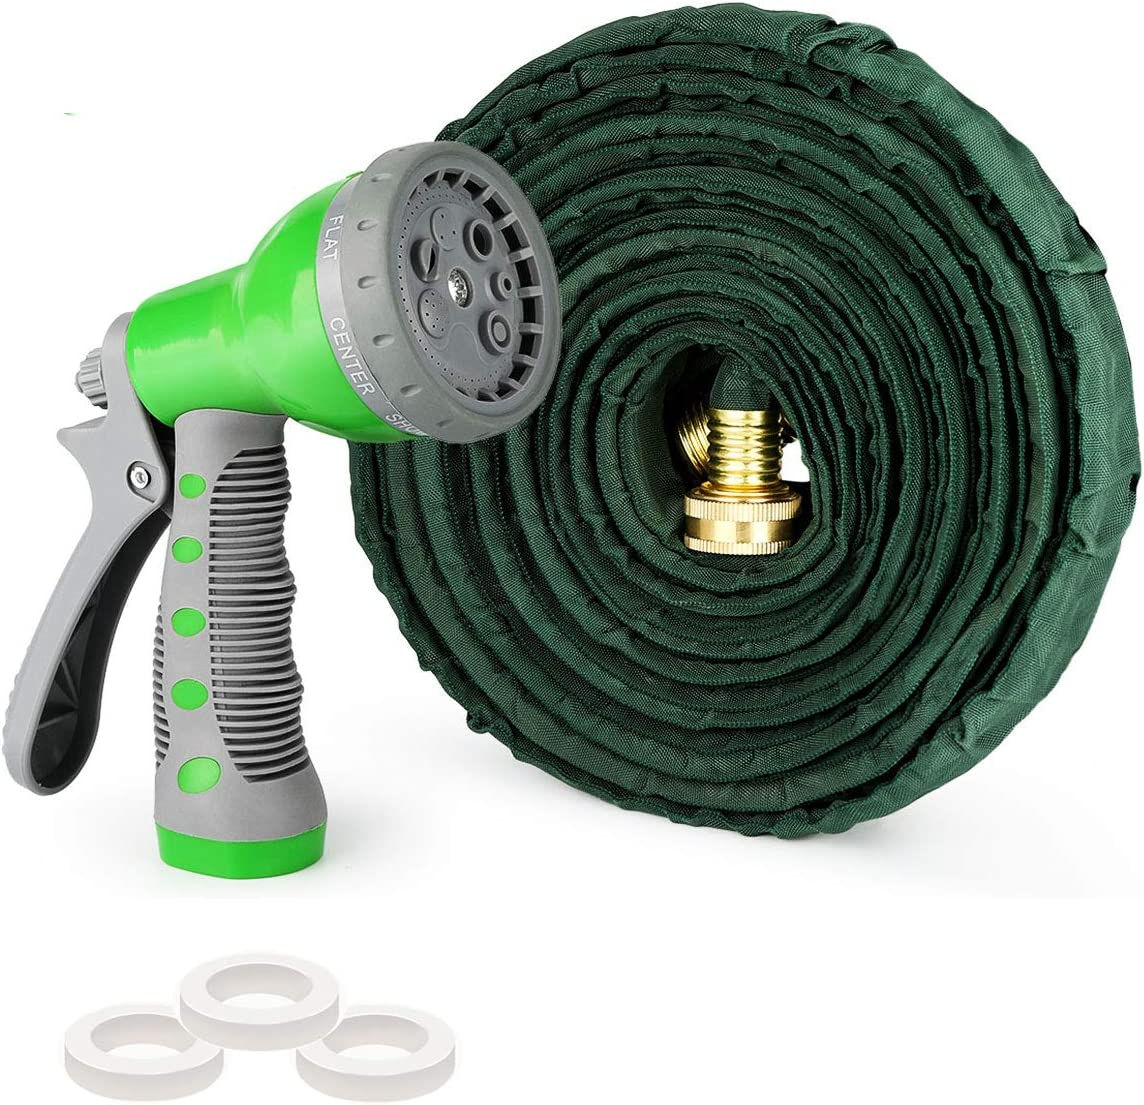 AUTOXEL Expandable Garden Hose,50 ft Leakproof Lightweight Garden Water Hose High Pressure Hose Spray